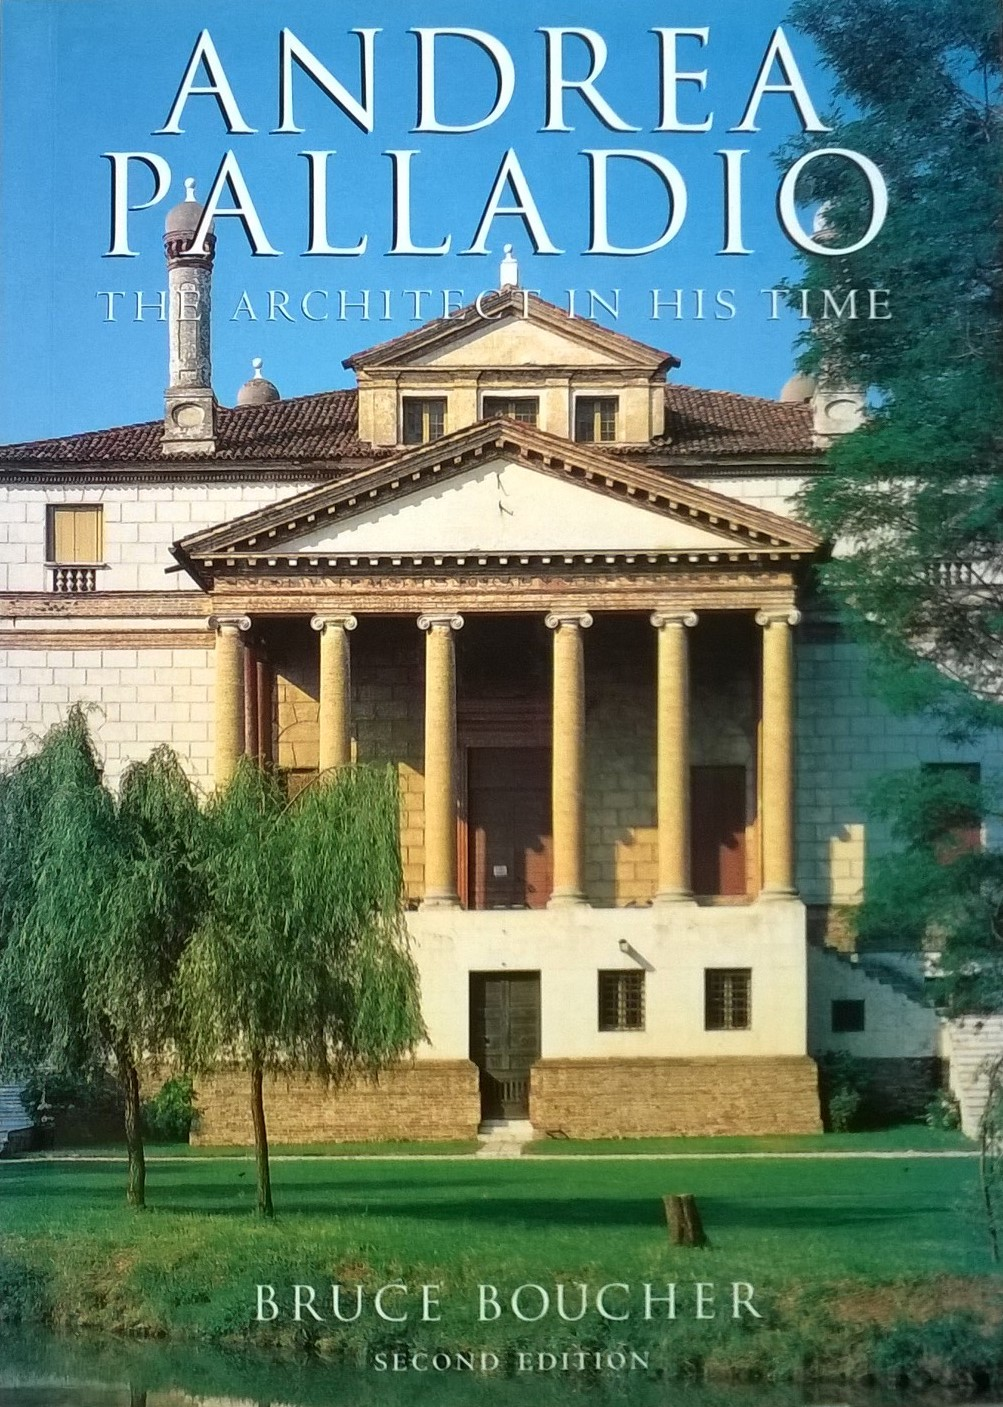 Boucher, Bruce Andrea Palladio: The Architect in his Time